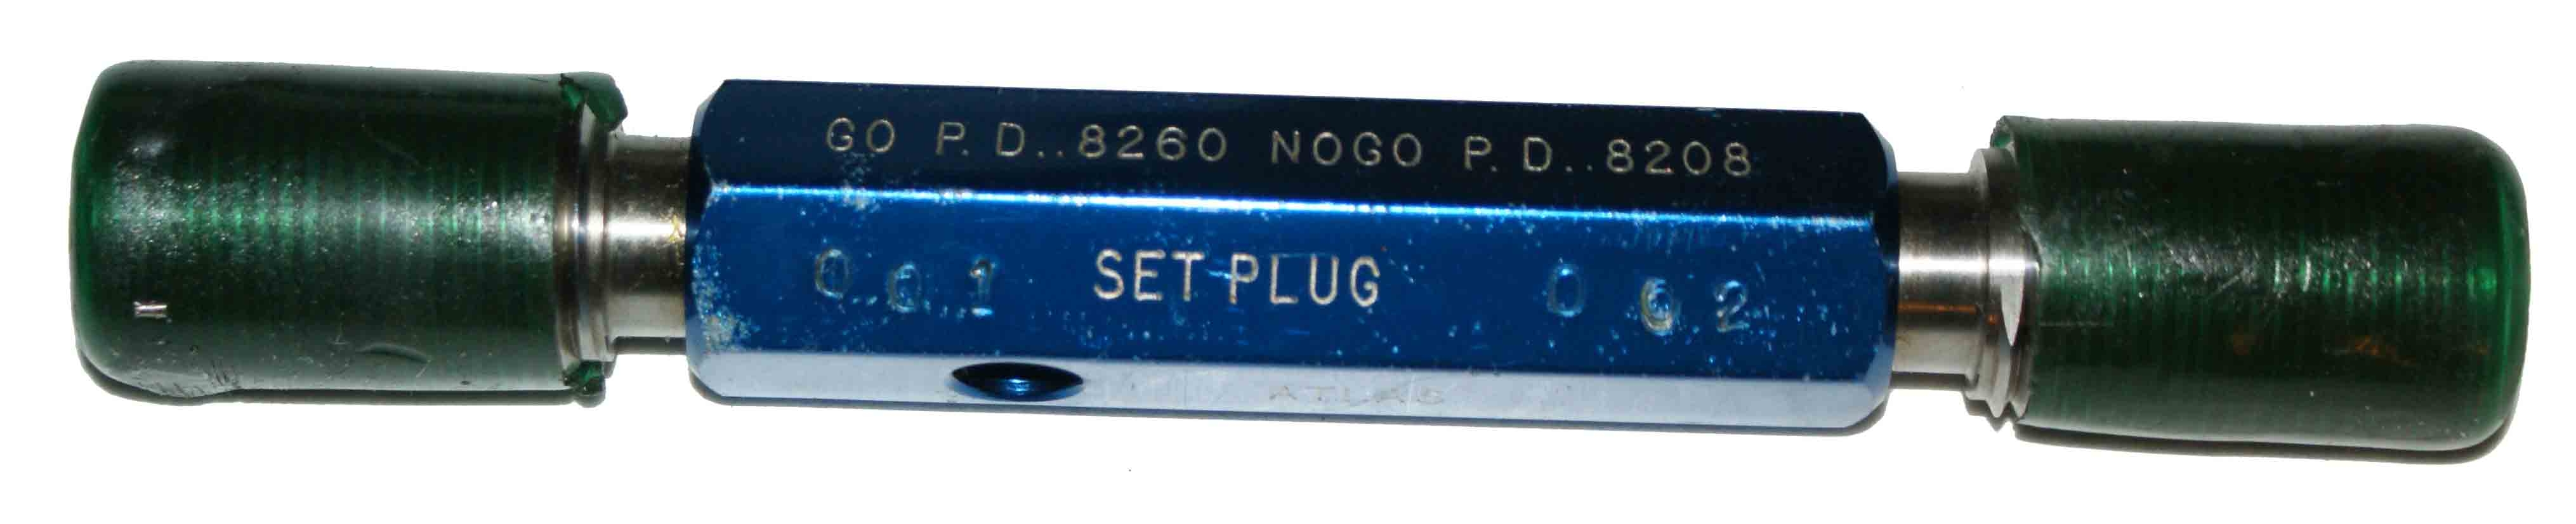 Atlas 7/8-14 NS Thread Set Plug